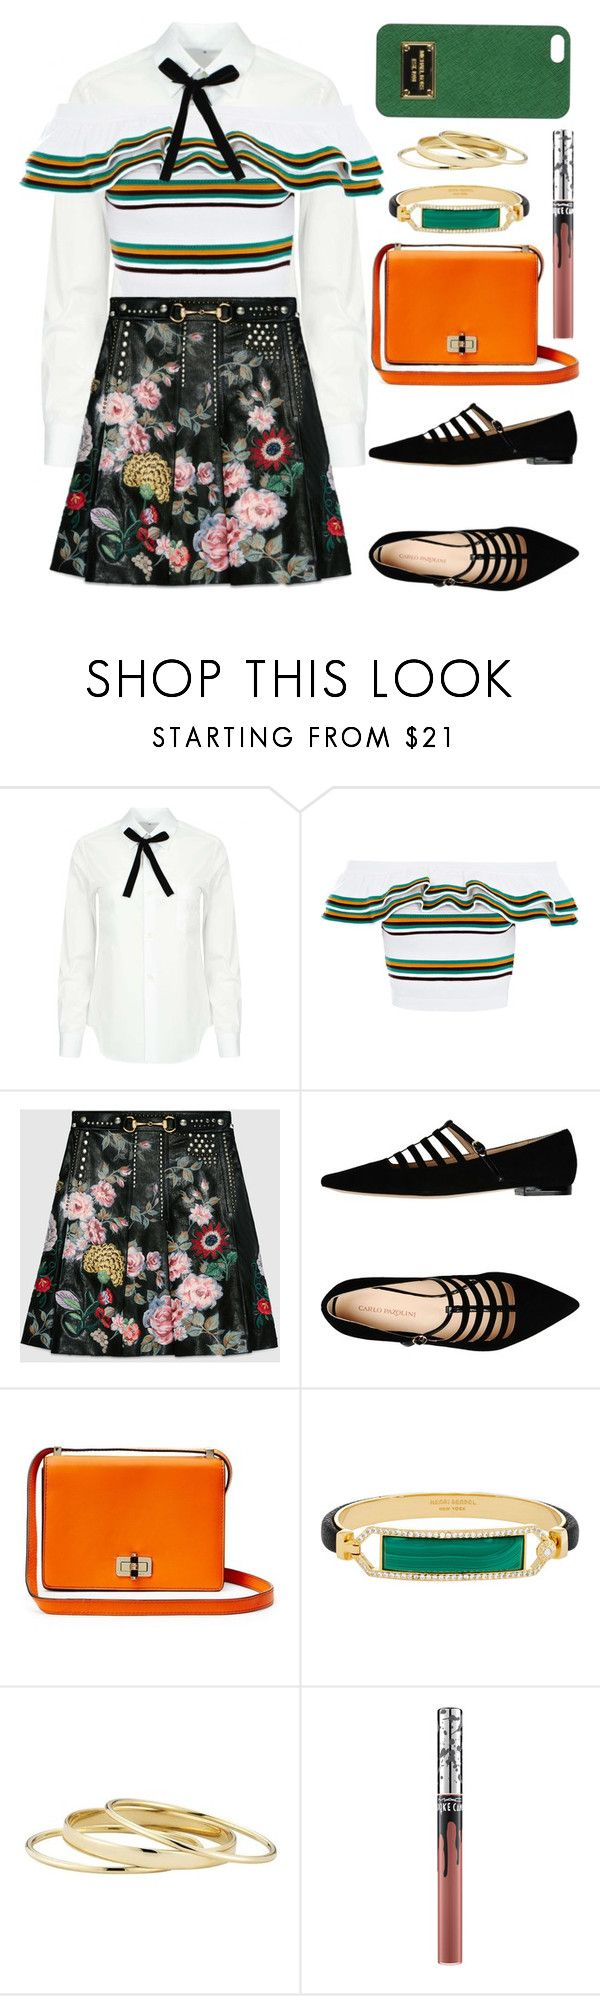 """BA70: Four seasons, heaven and earth"" by bugatti-veyron ❤ liked on Polyvore featuring Comme des Garçons, MSGM, Gucci, Carlo Pazolini, Diane Von Furstenberg, Henri Bendel, Minor Obsessions, MAC Cosmetics and Michael Kors"